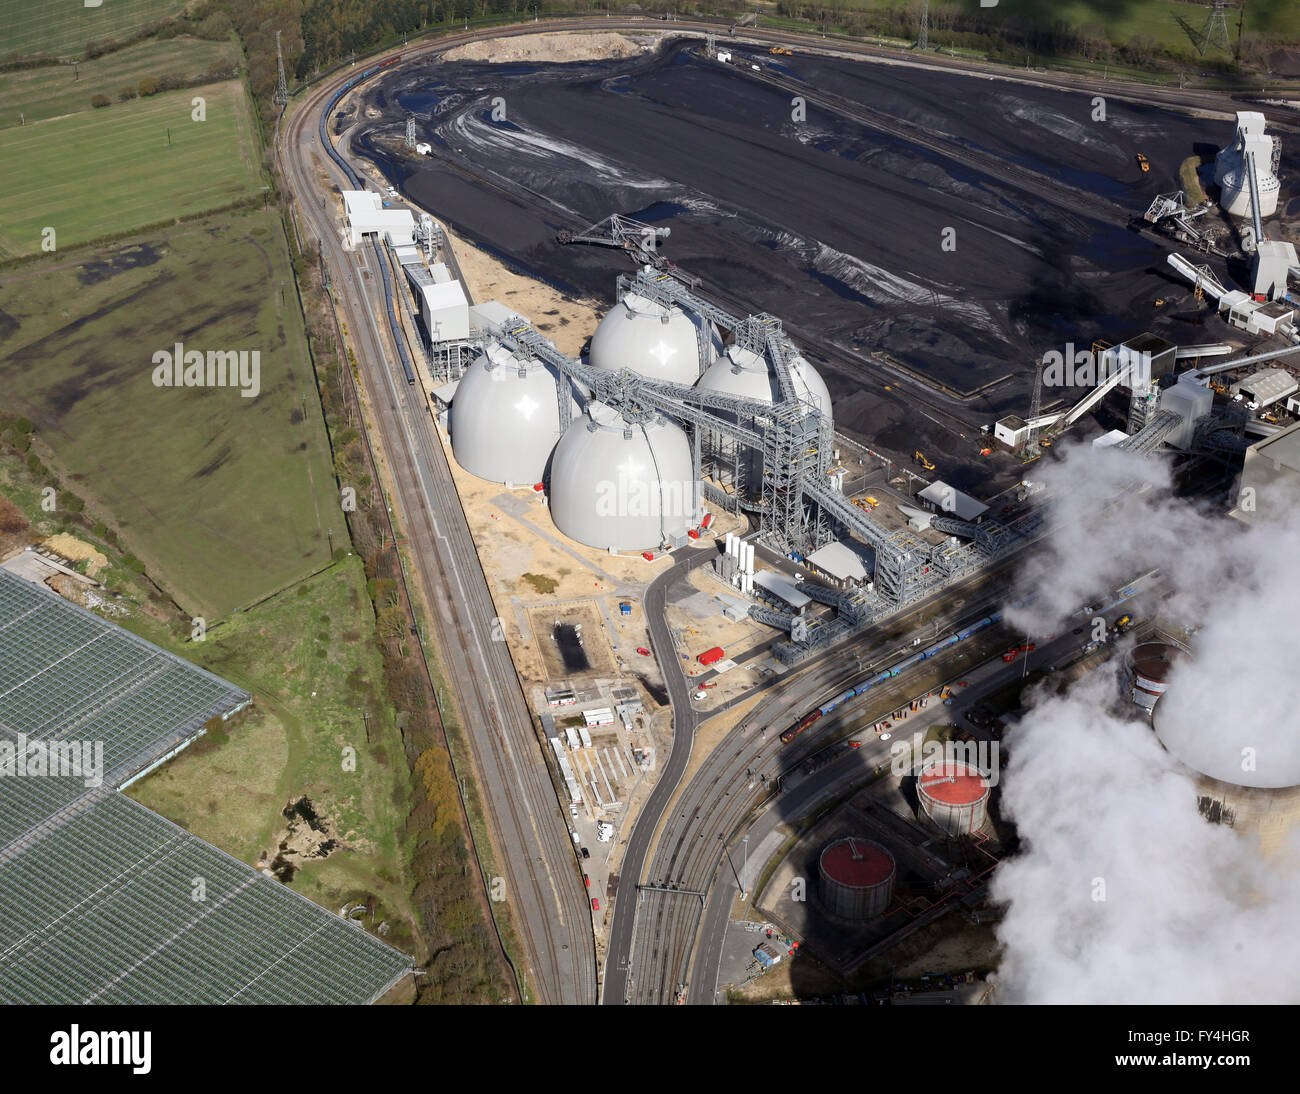 aerial view of the biomass power plant at Drax Power Station, Yorkshire, UK - Stock Image